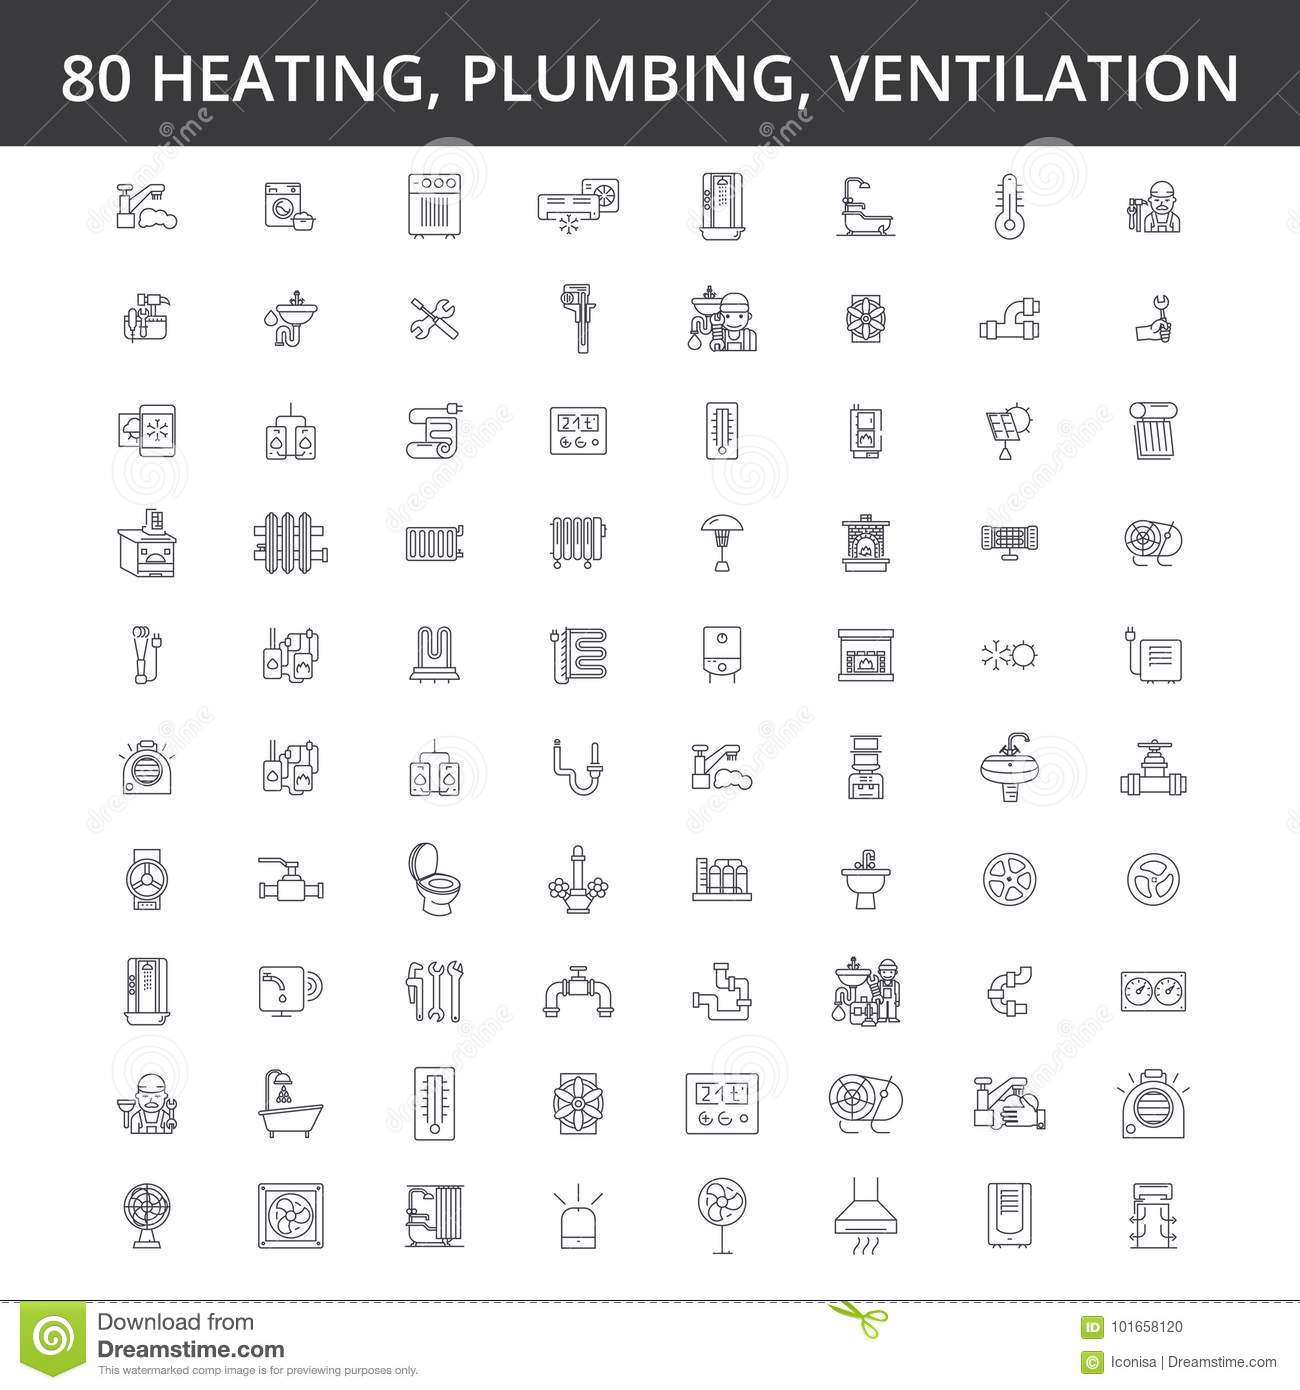 Hvac stock illustrations 578 hvac stock illustrations vectors hvac stock illustrations 578 hvac stock illustrations vectors clipart dreamstime biocorpaavc Images